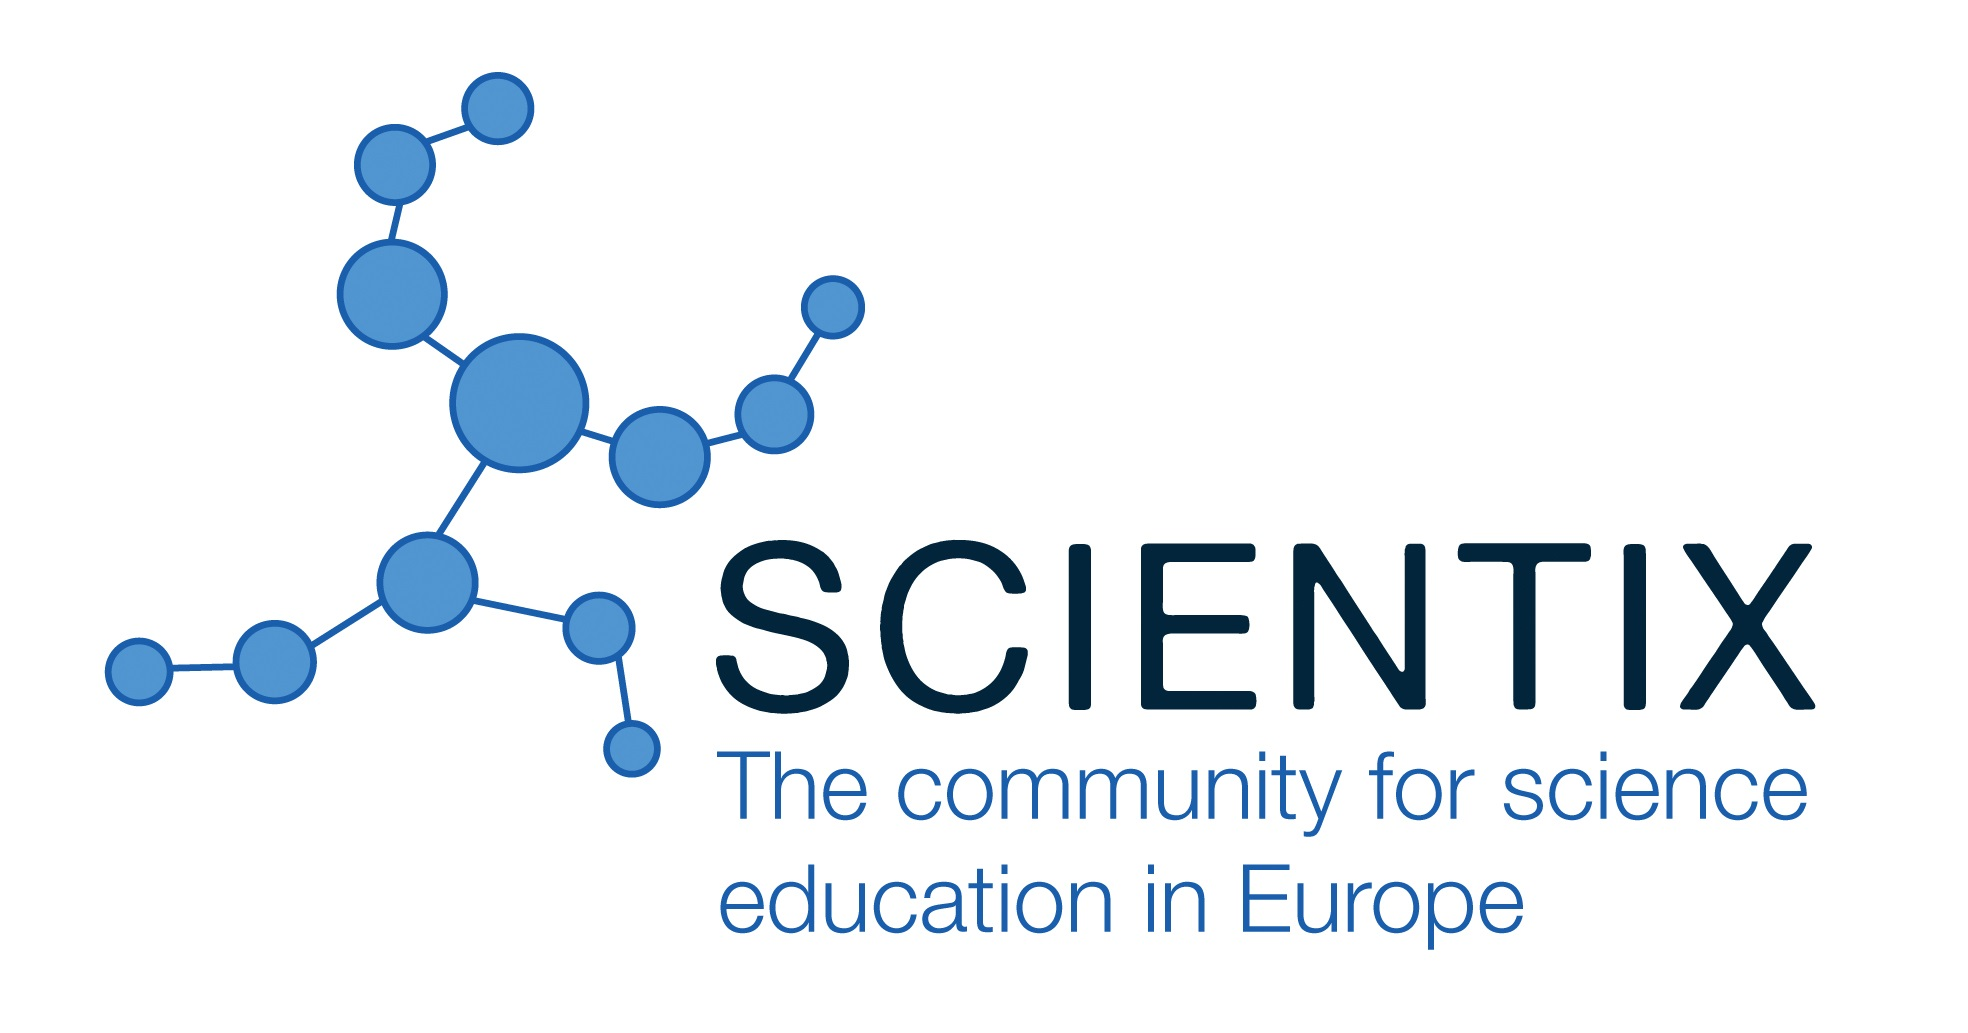 scientix_logo